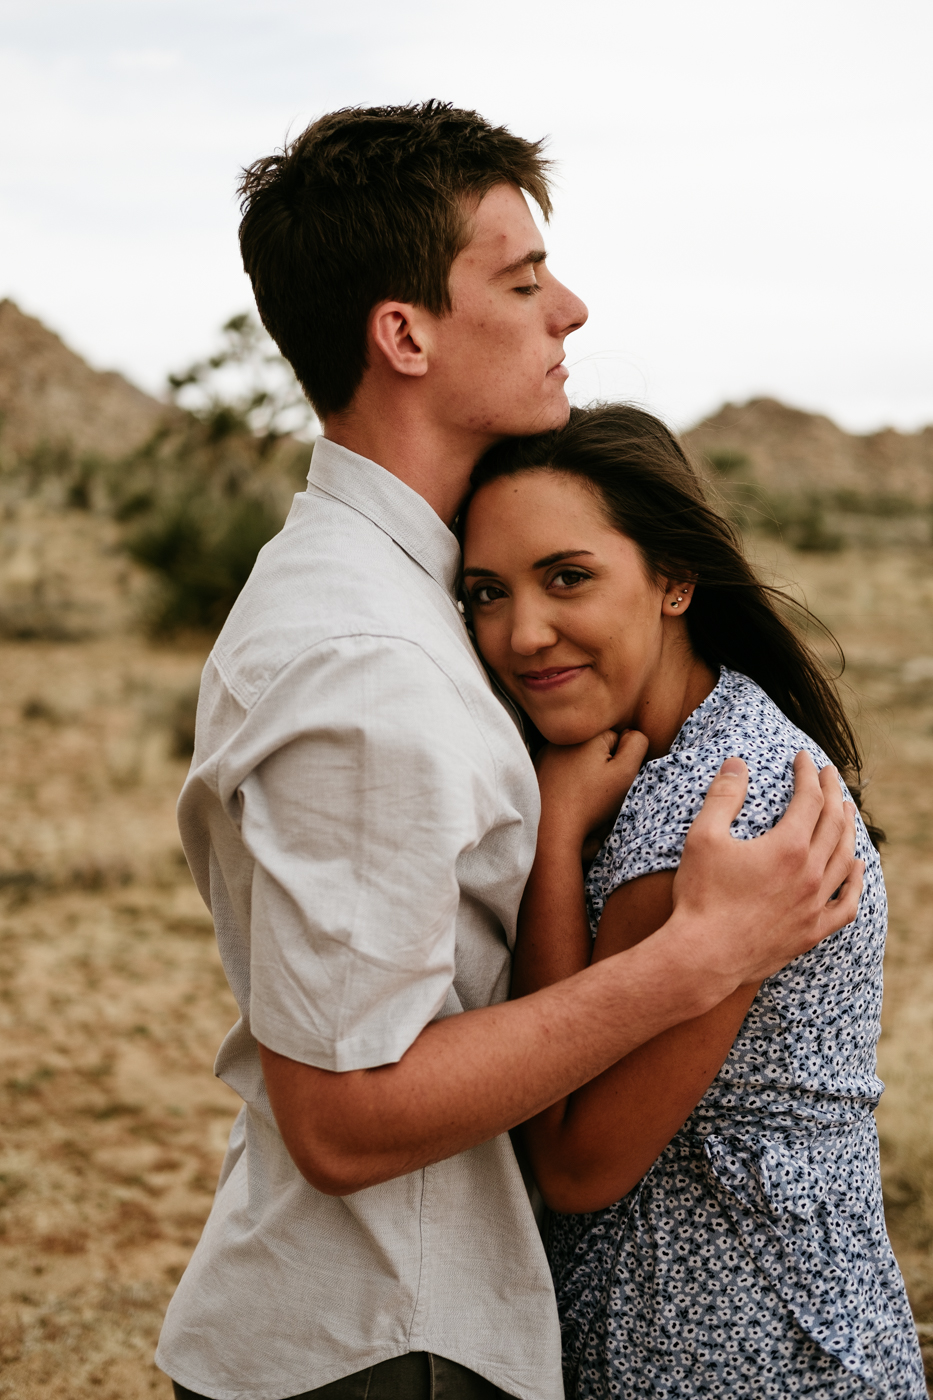 Baliey+Thomas.Engagement.JoshuaTree©mileswittboyer.com2018-2.jpg